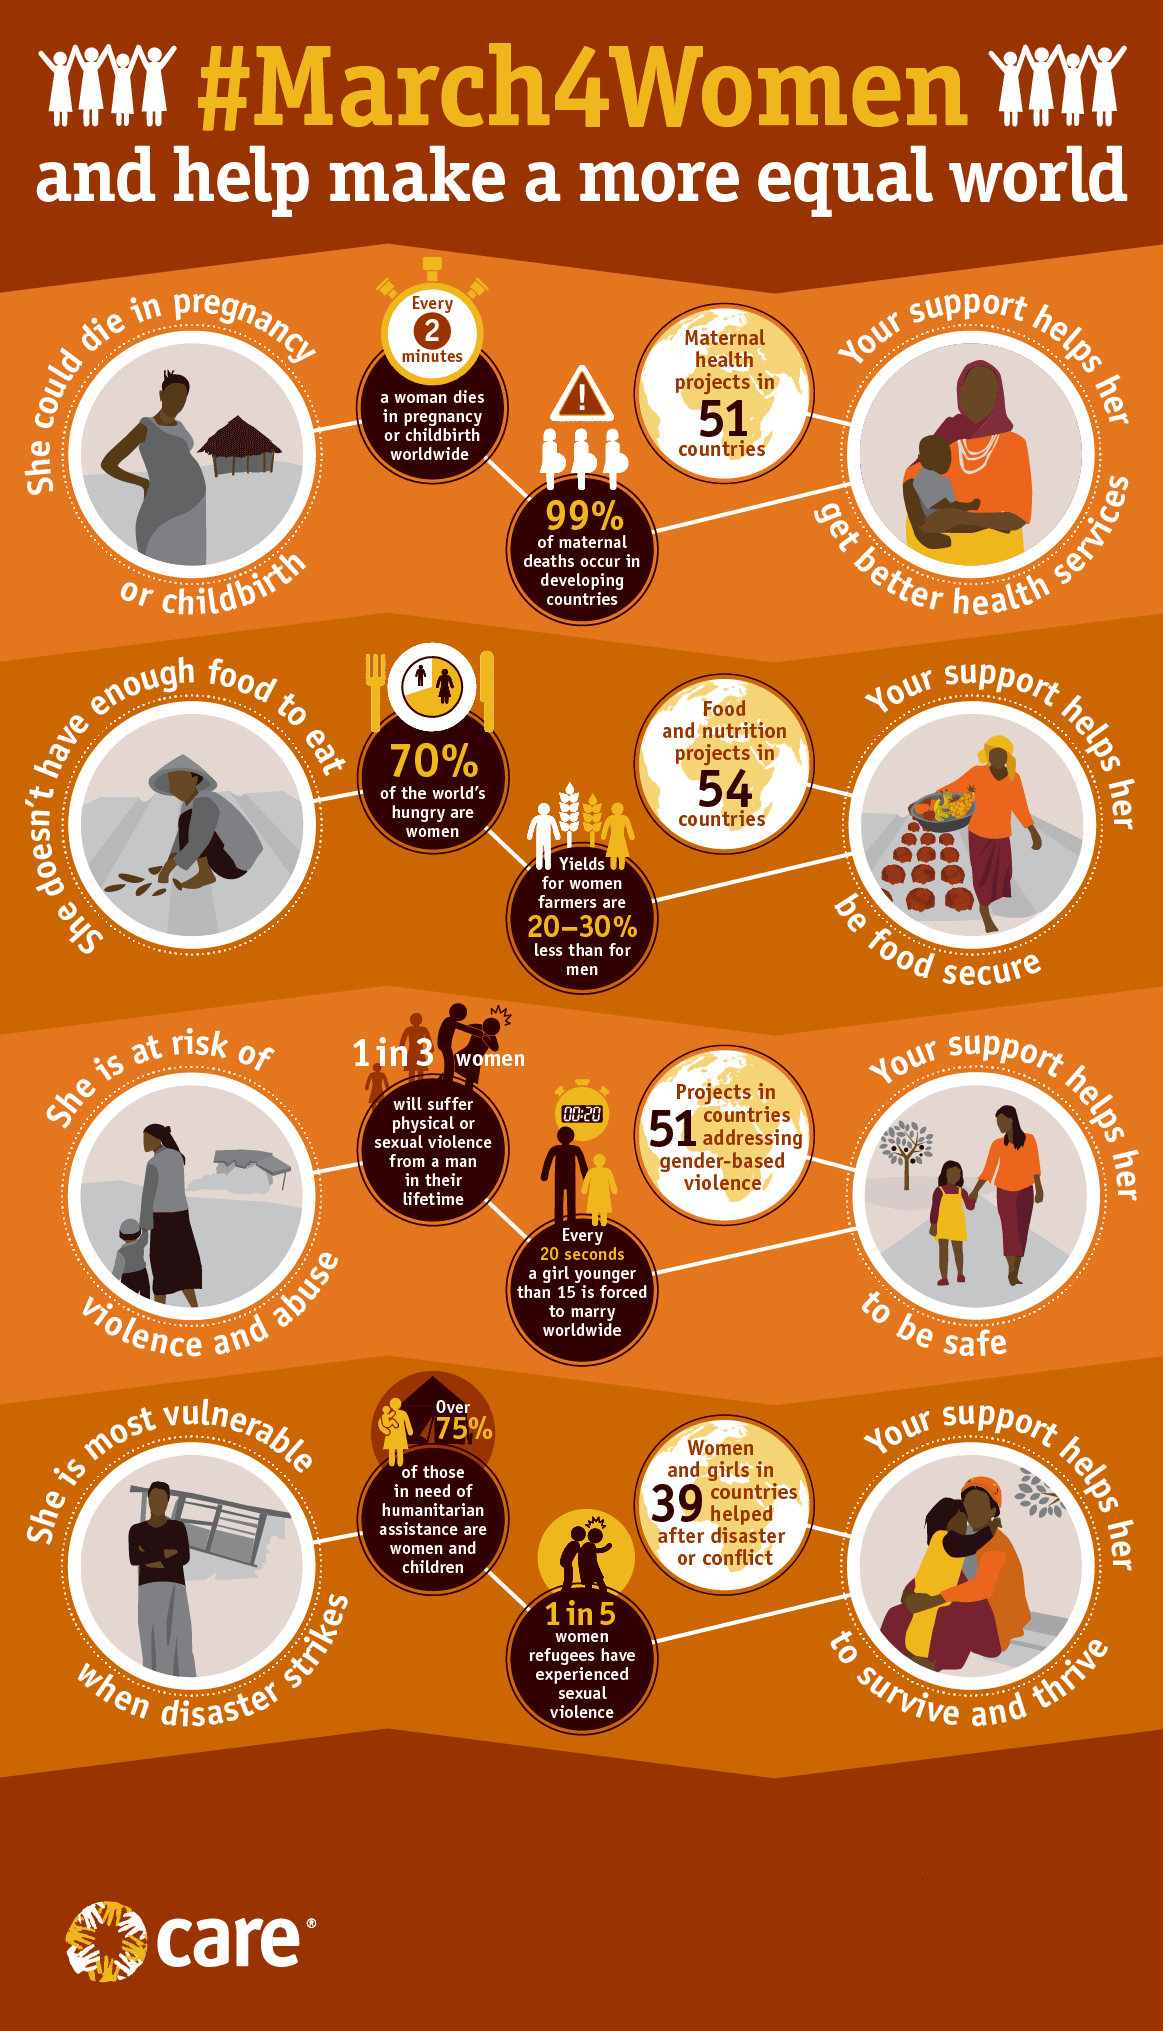 Infographic on women and health, food, GBV and disasters